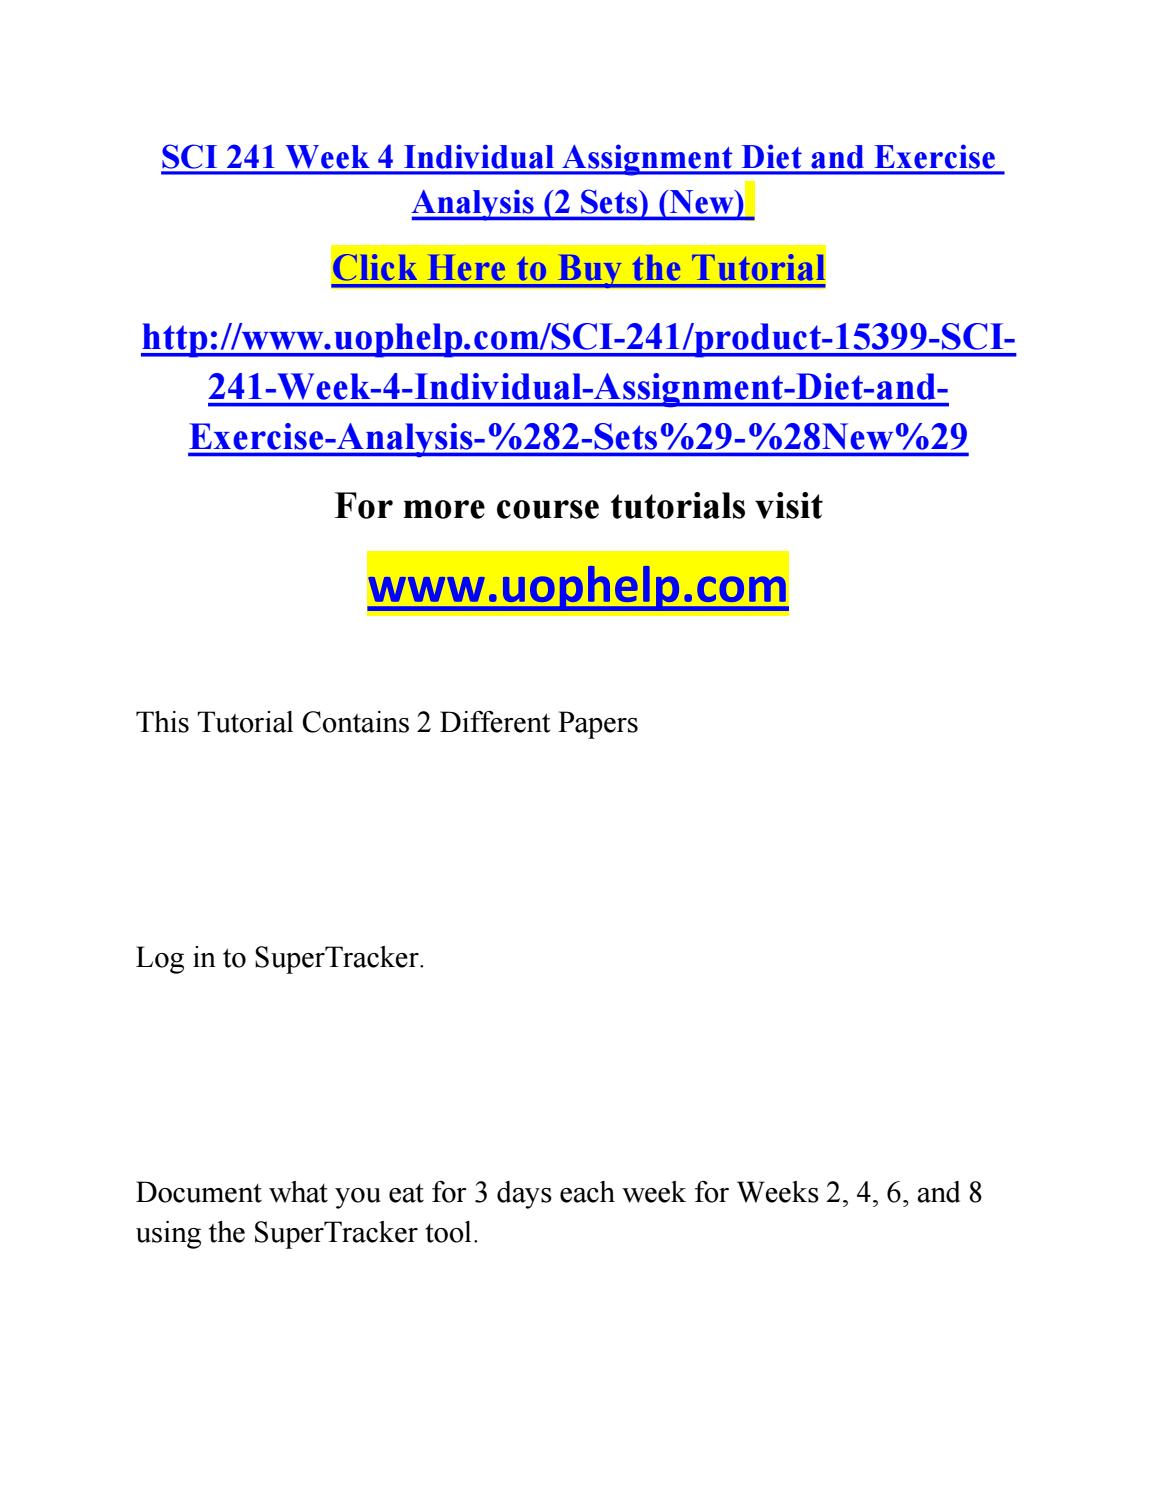 sci 241 Homeworkflip is a online tutorial store we provides sci 241 week 3 dq 1 and dq 2.